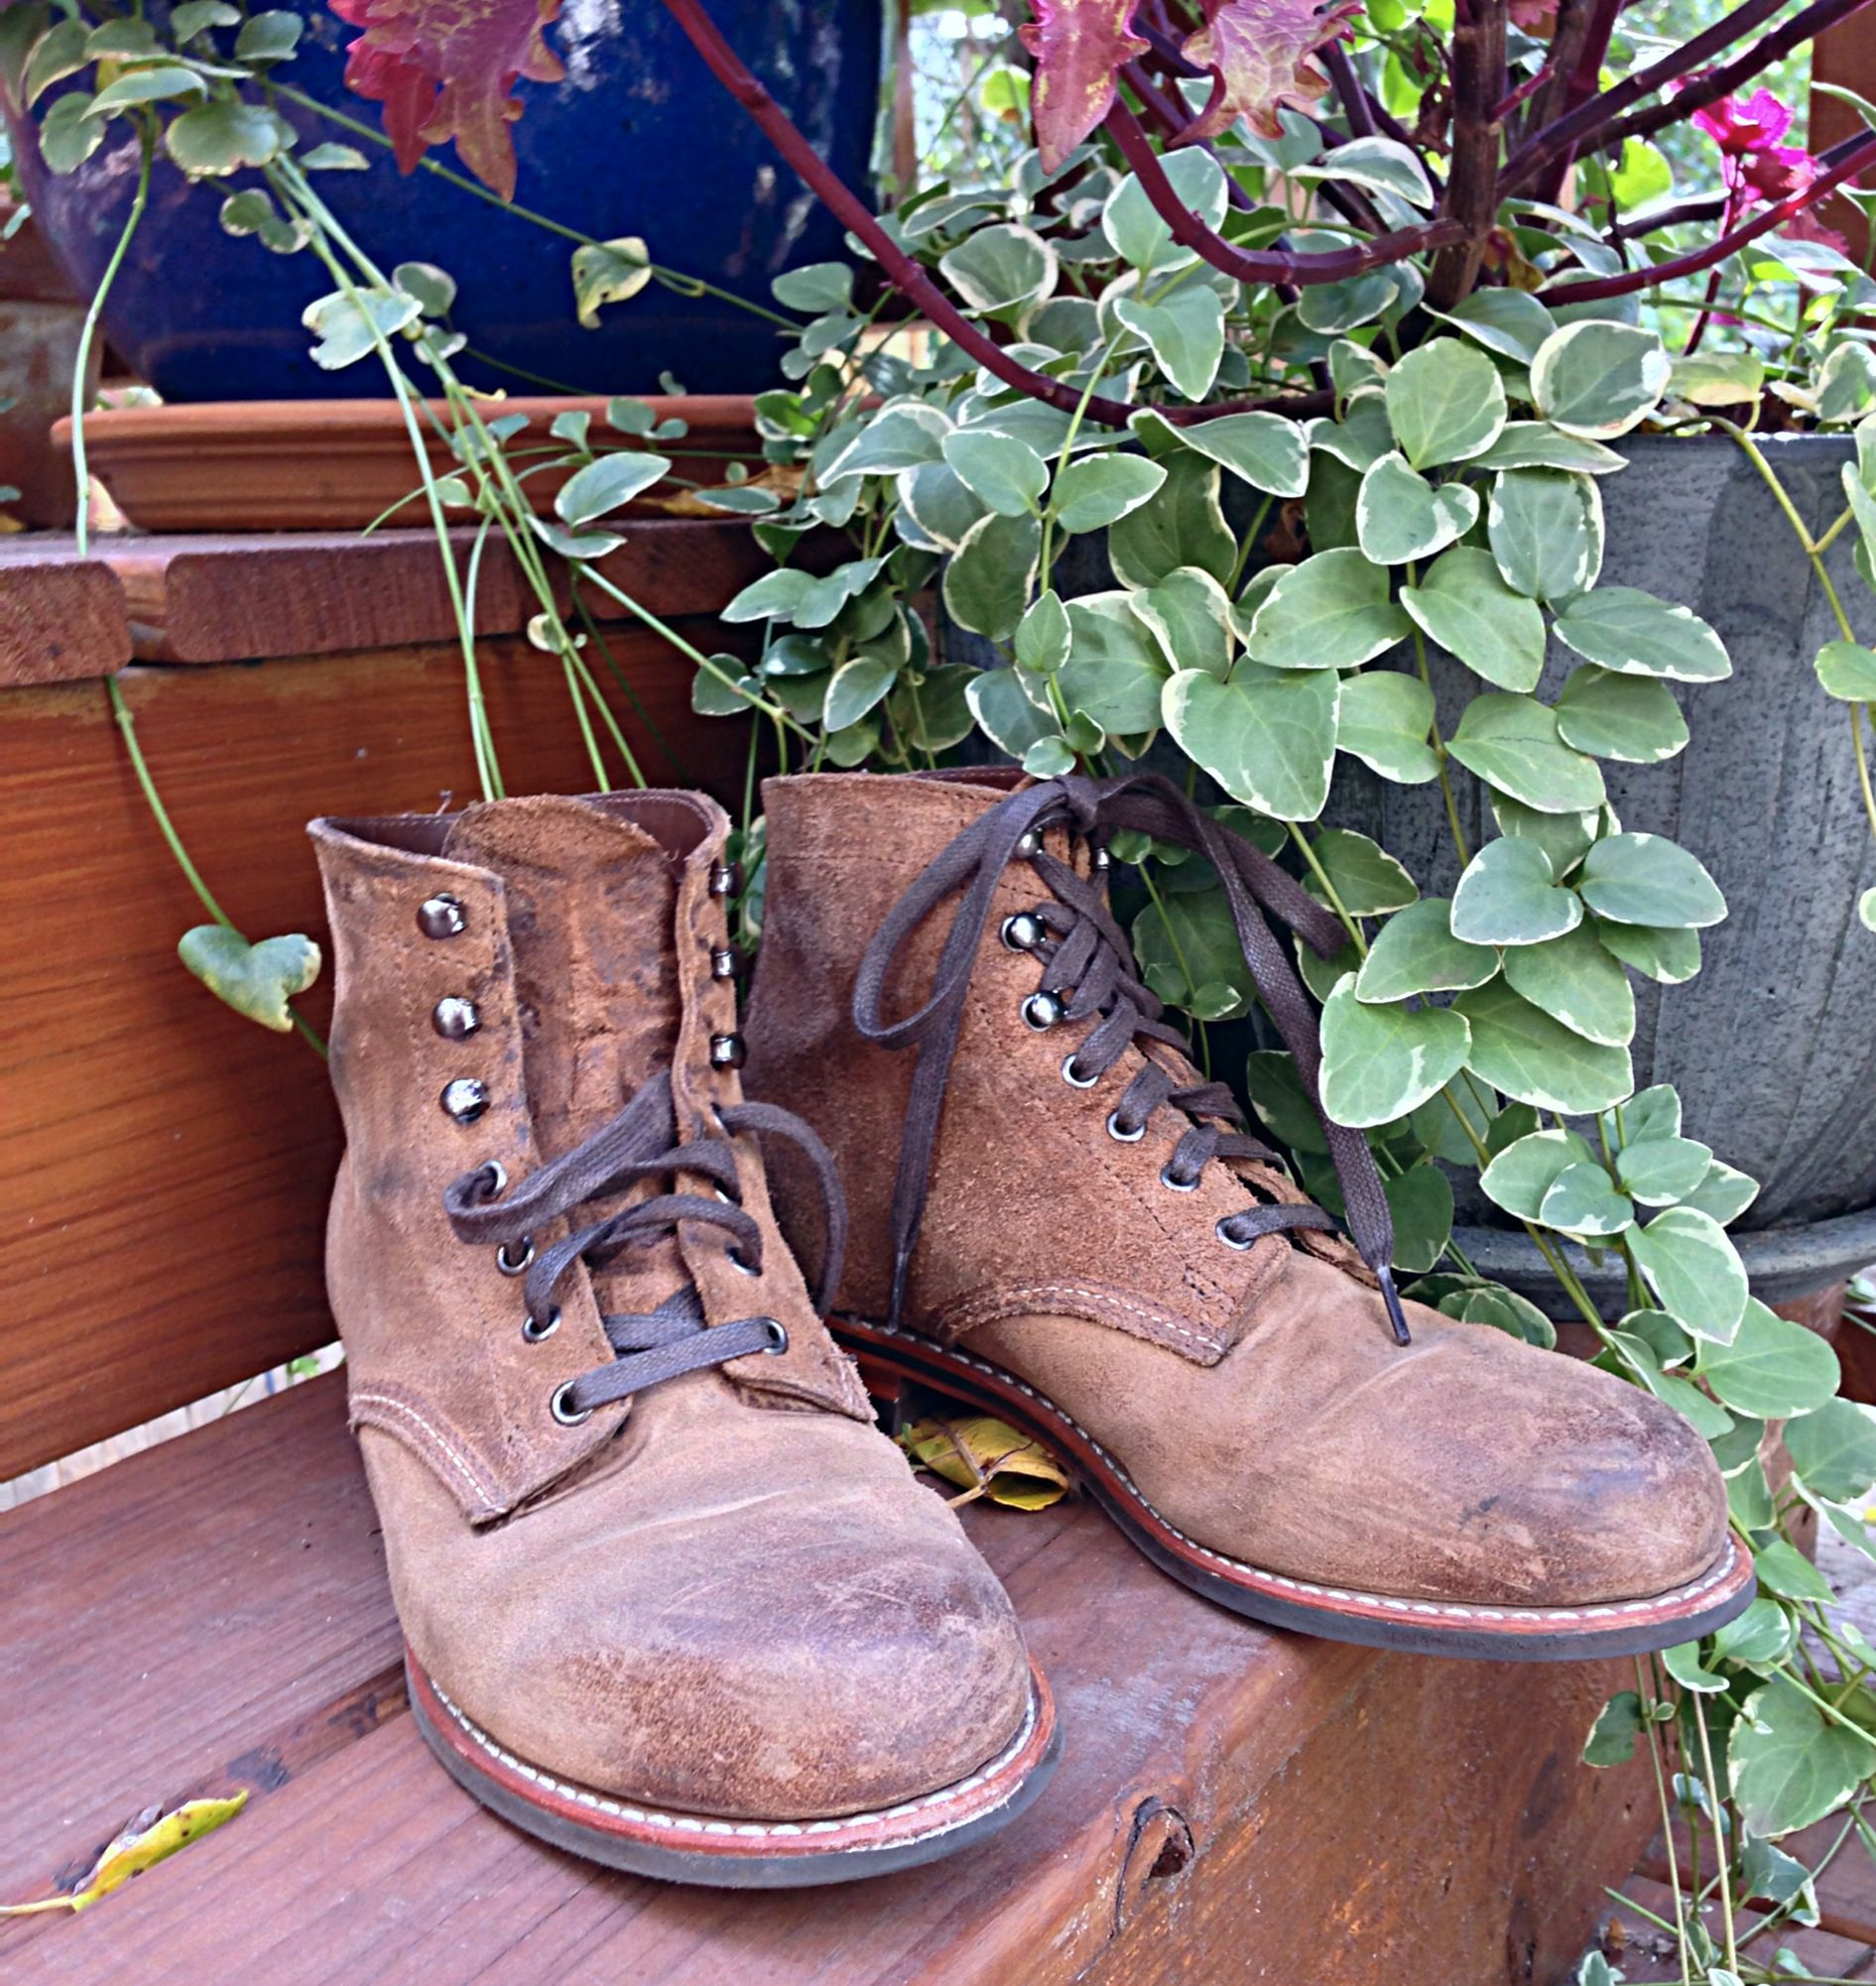 61afd67bae5 Morley boots from Wolverine 1000 Mile #wolverine1k | Wolverine boots ...